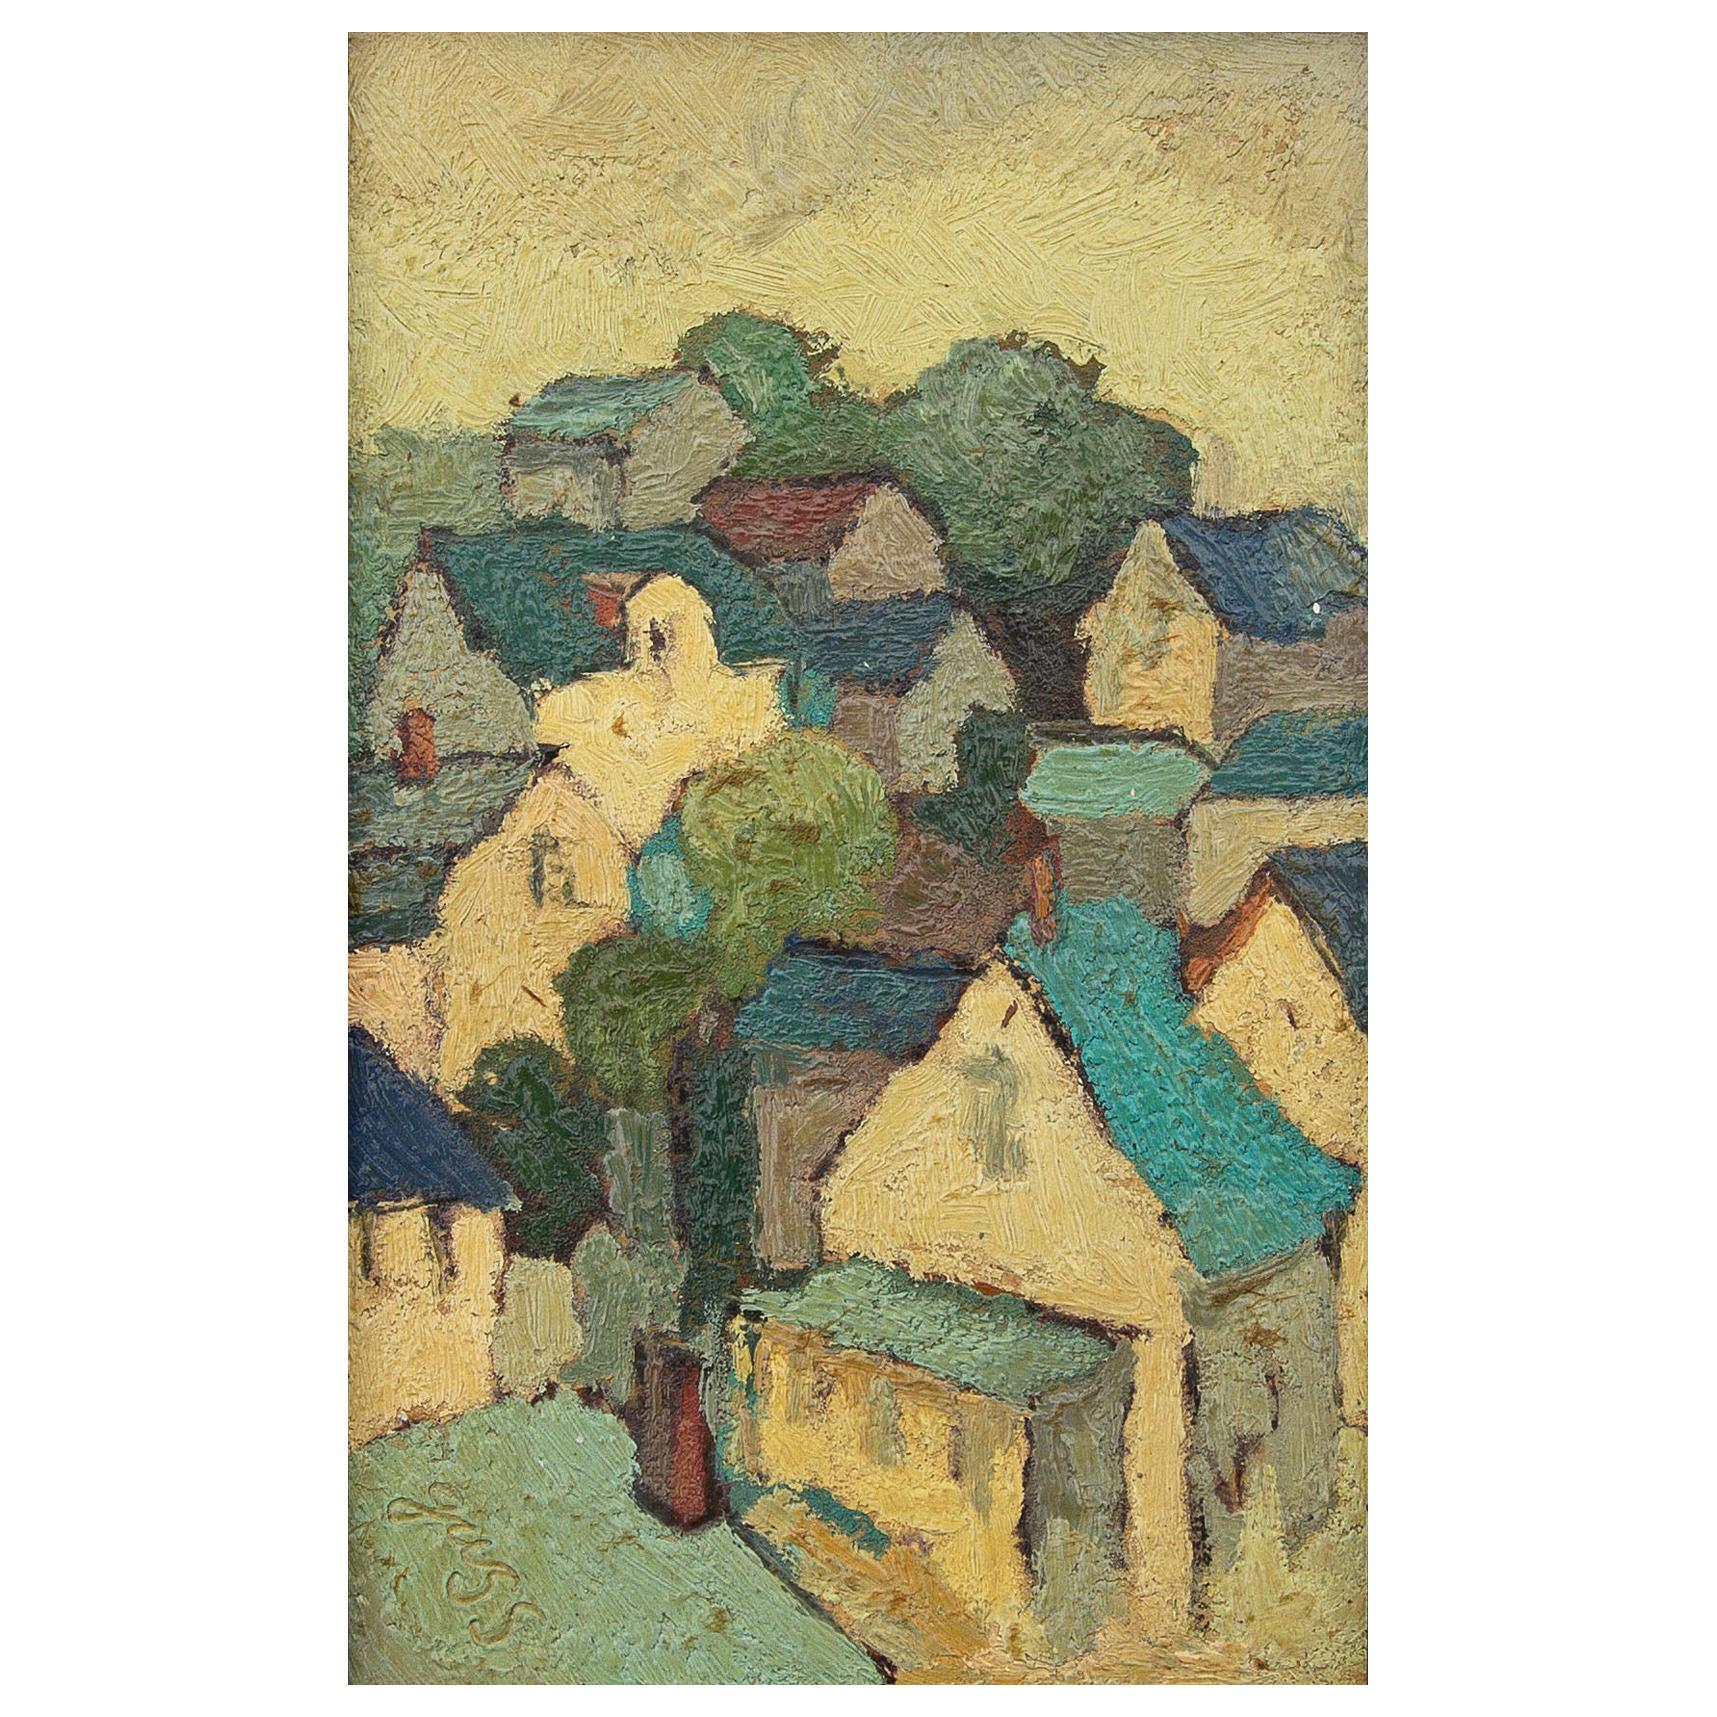 Impressionist Painting French Village by Edna Gass